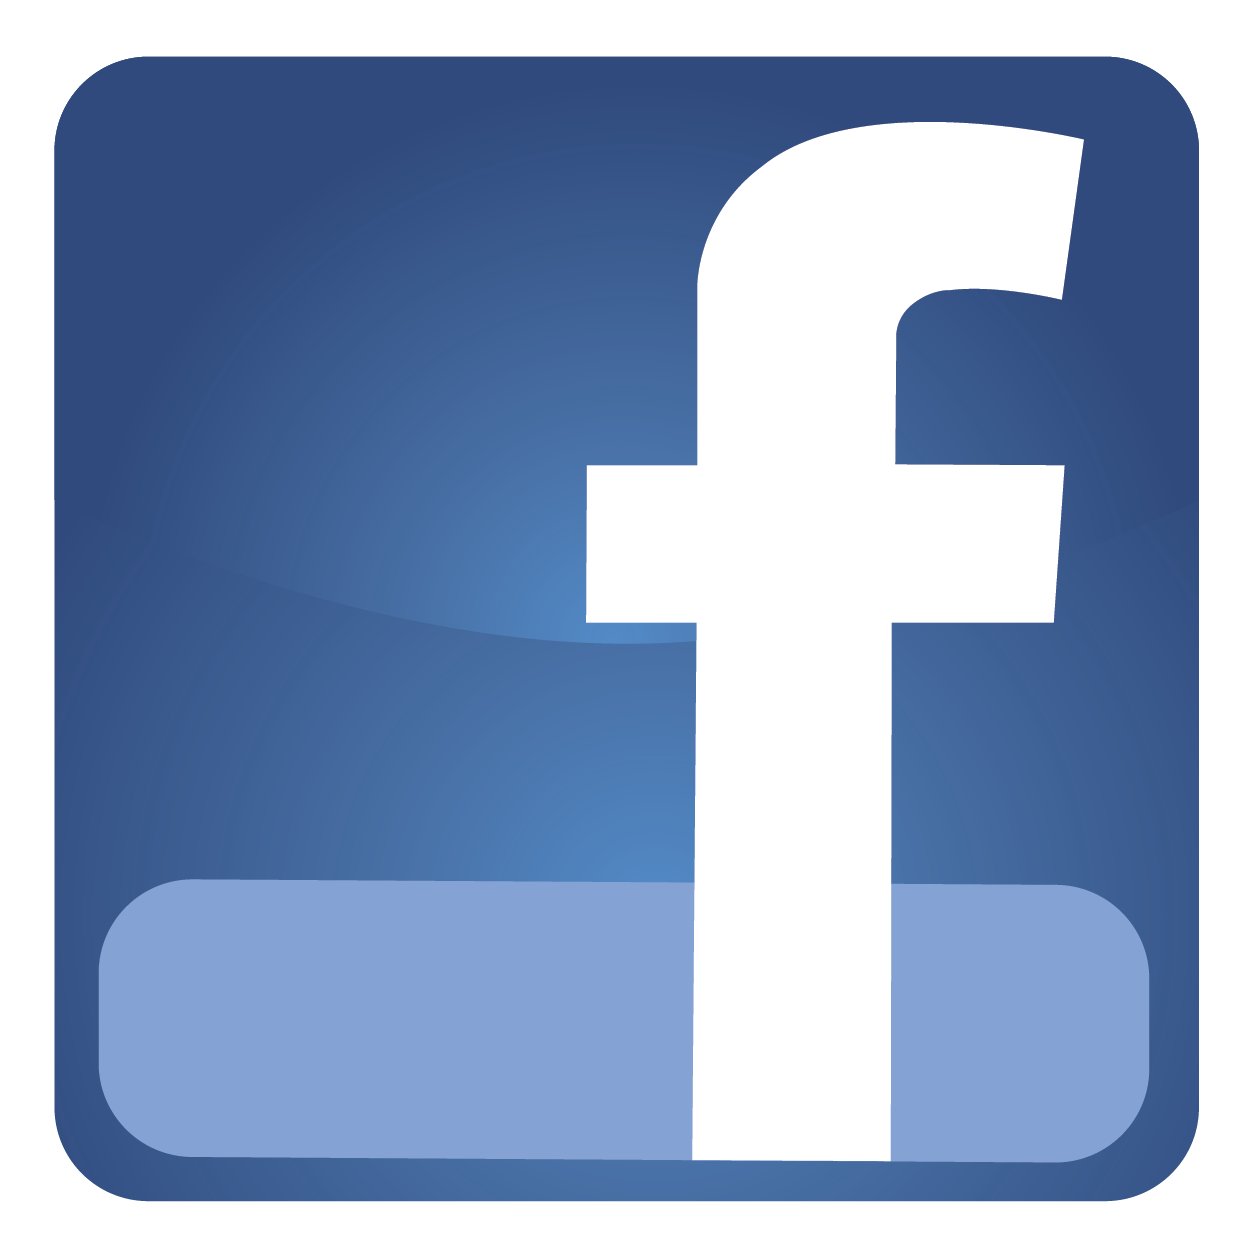 Facebook logo ICON 02